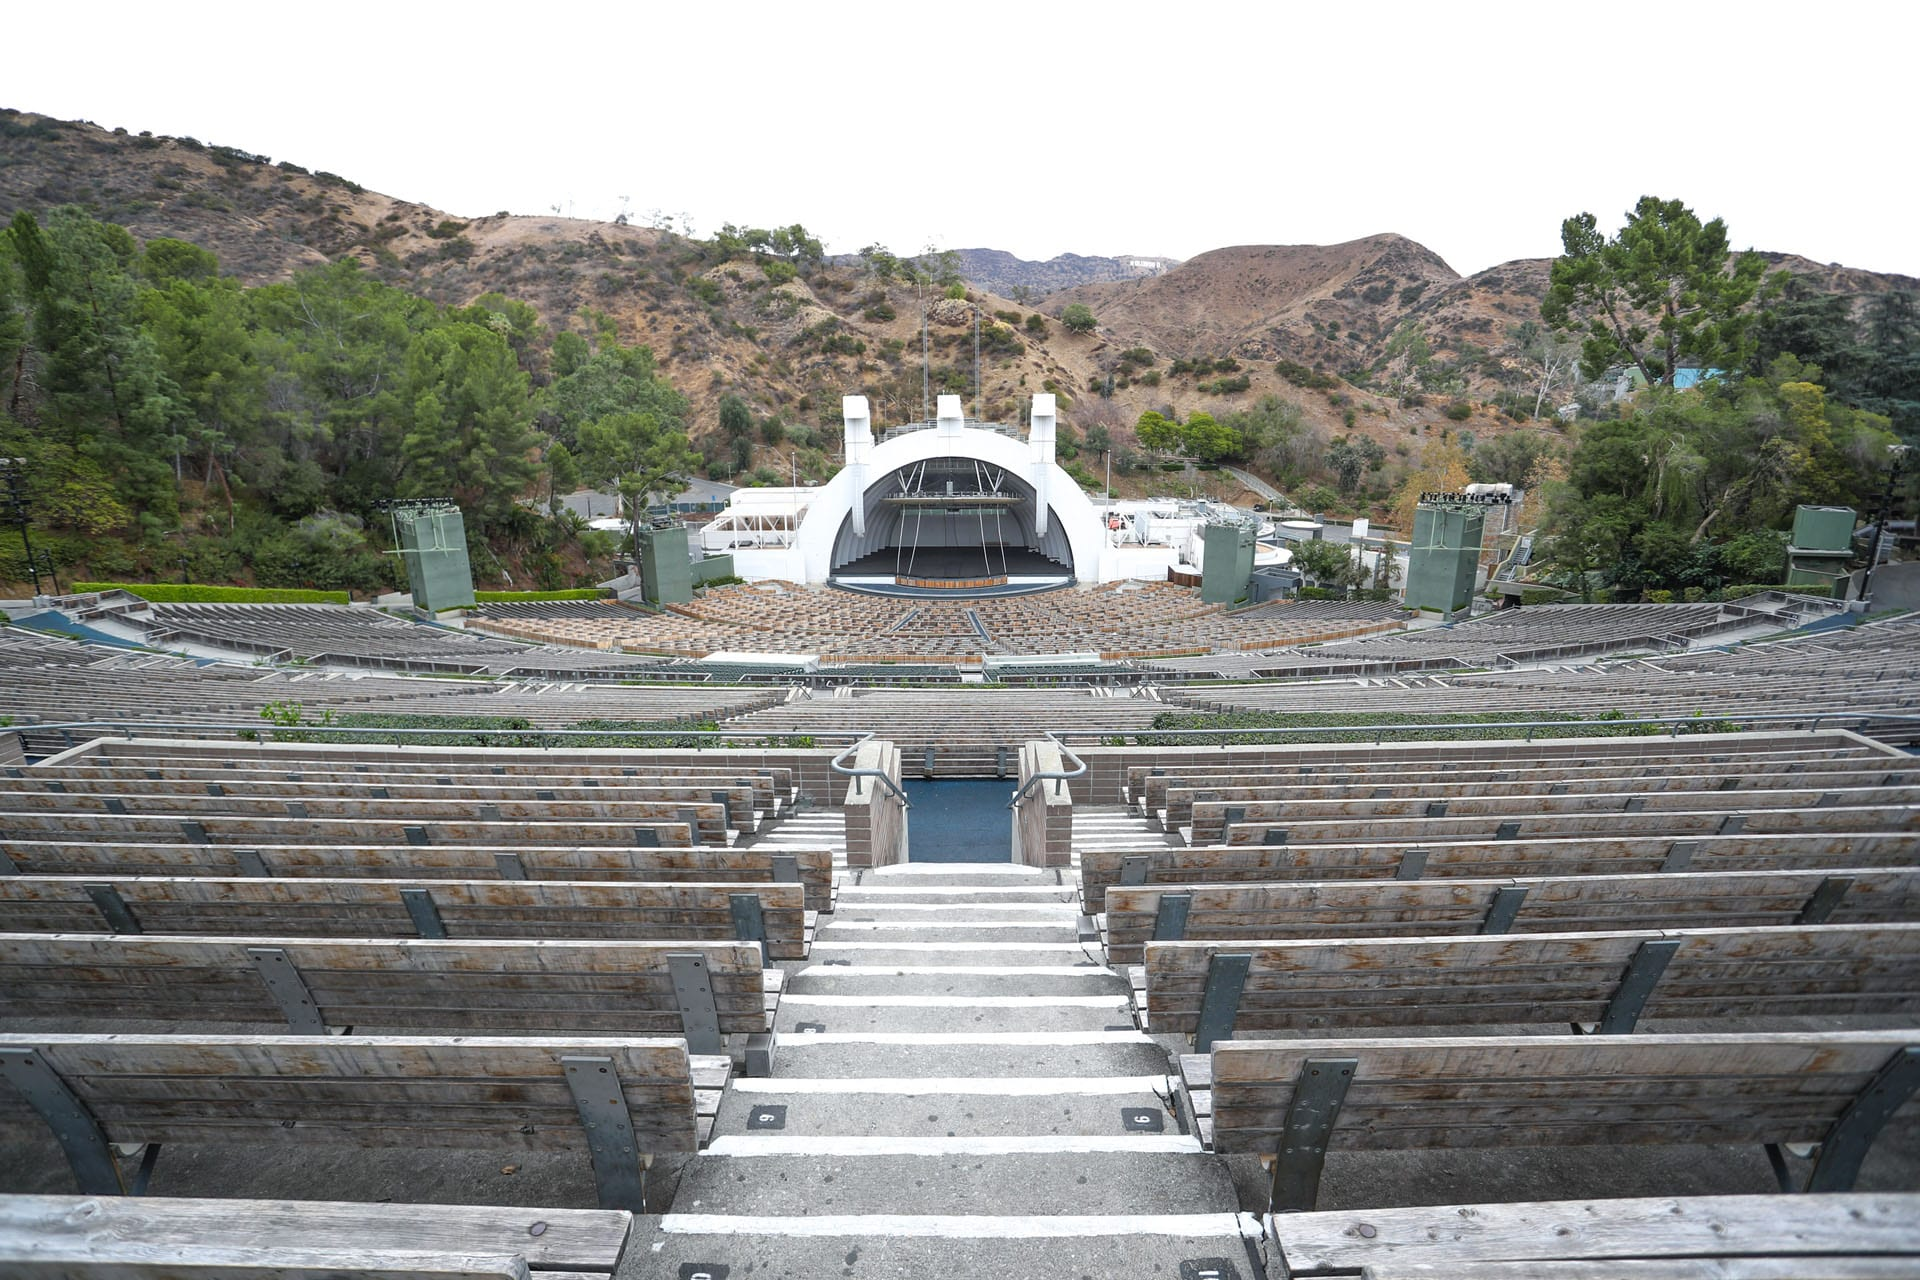 Far back view of amphitheater from bleachers